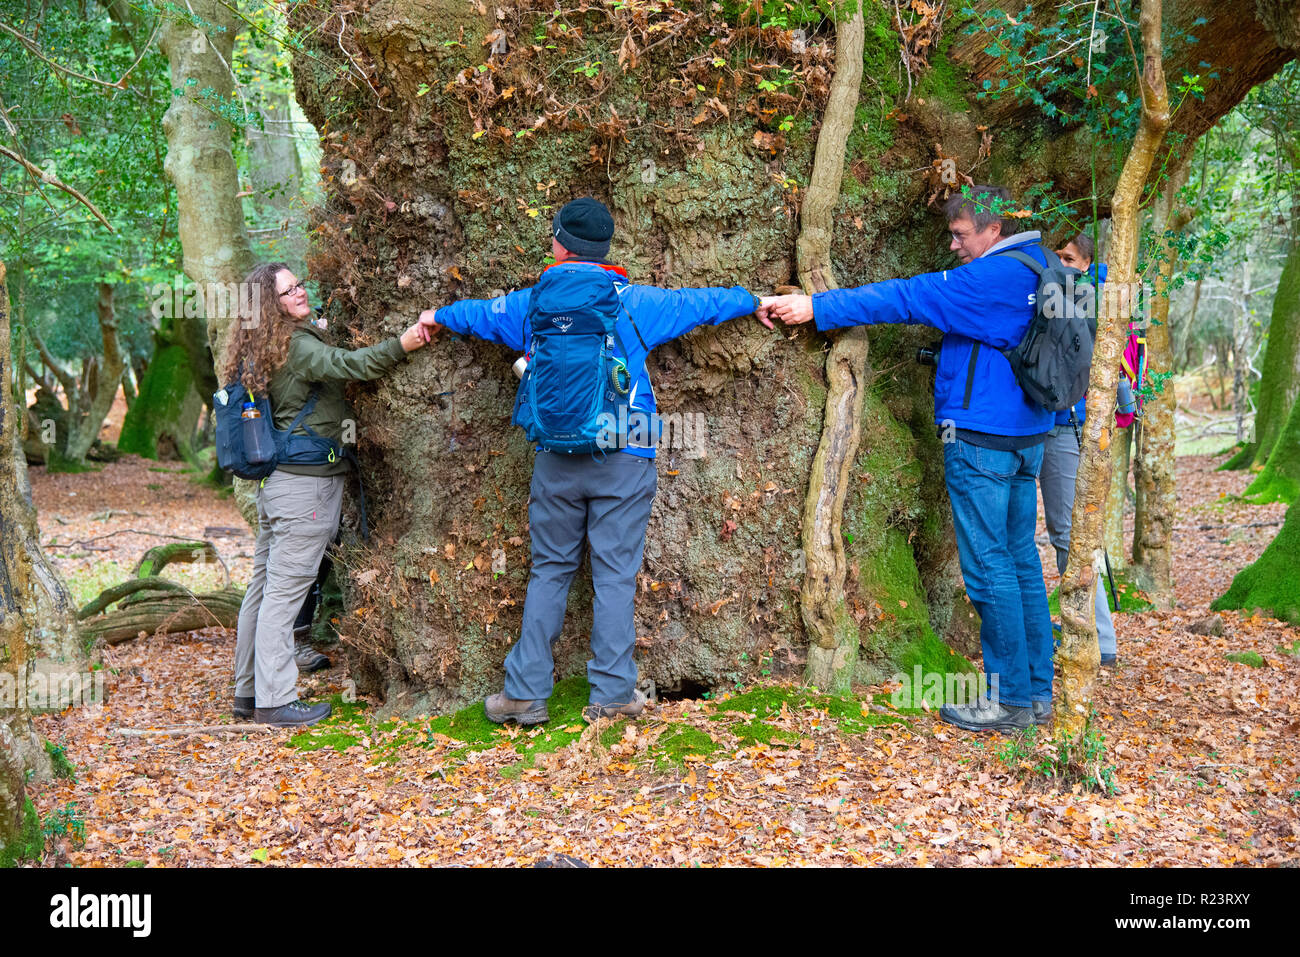 Group of walkers hug the Gritnam Oak with a girth of 8m.It is one of the largest ancient trees in the New Forest National Park, Hampshire, UK, England - Stock Image